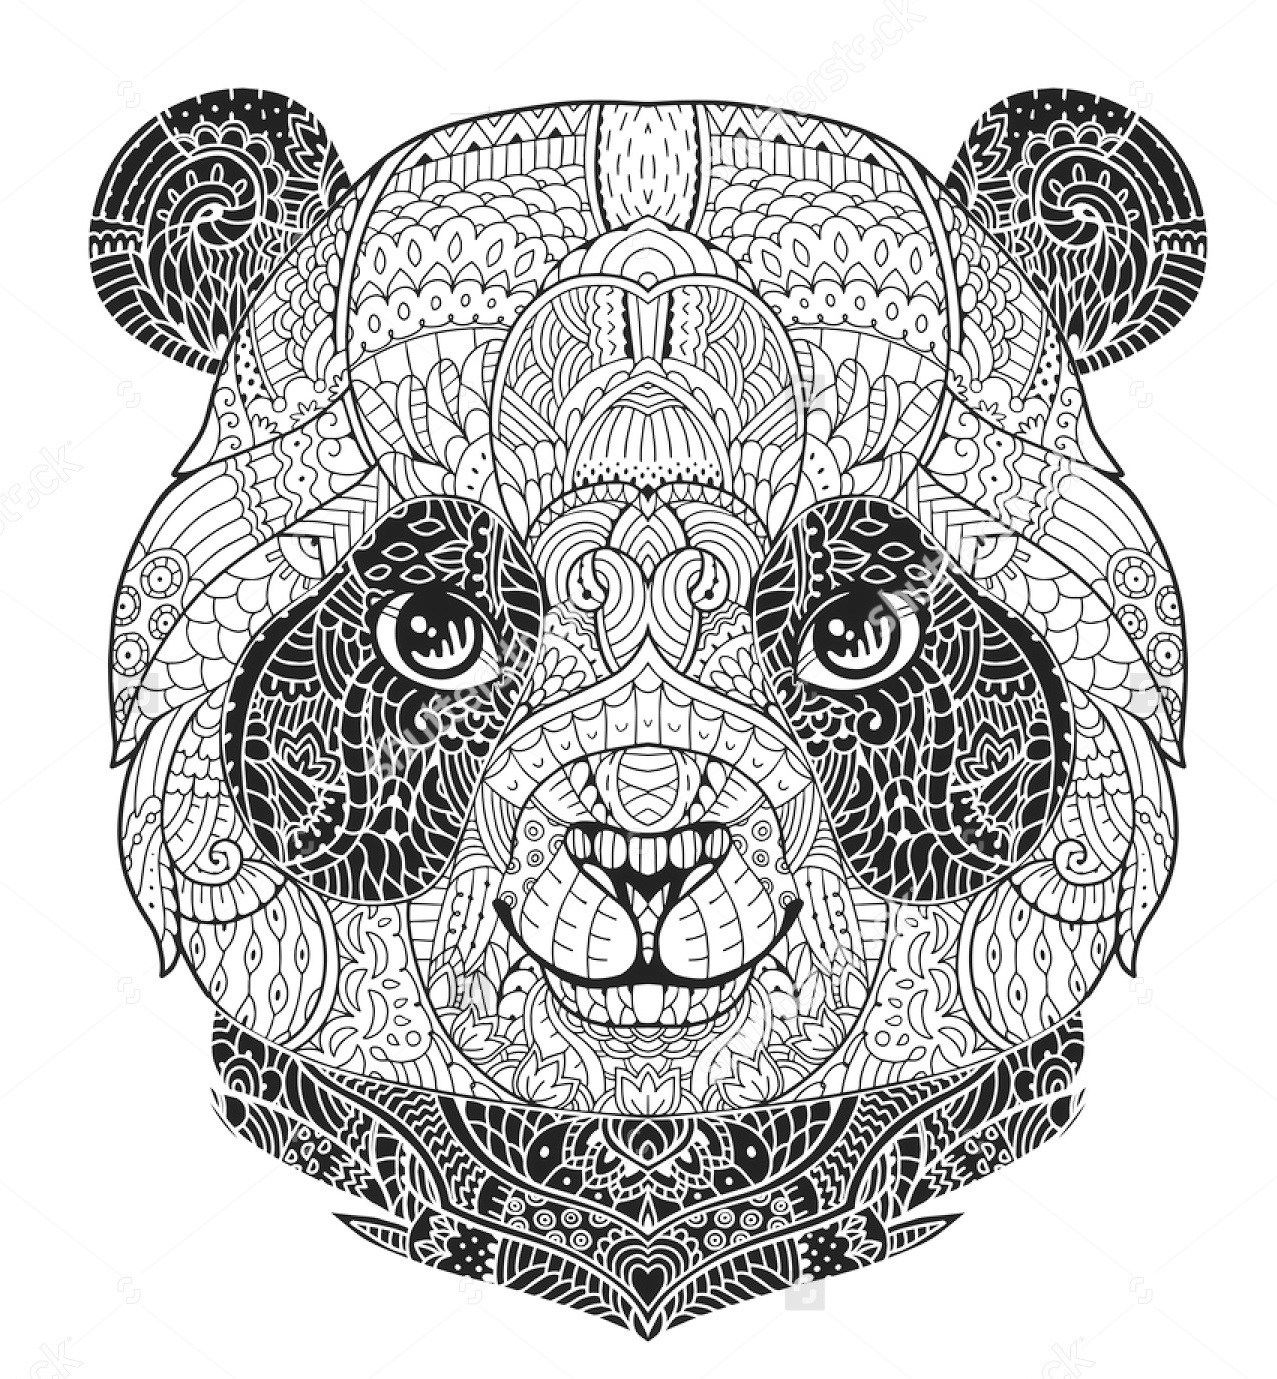 Zentangle Panda Face Colouring Sheet Art Coloring Pages